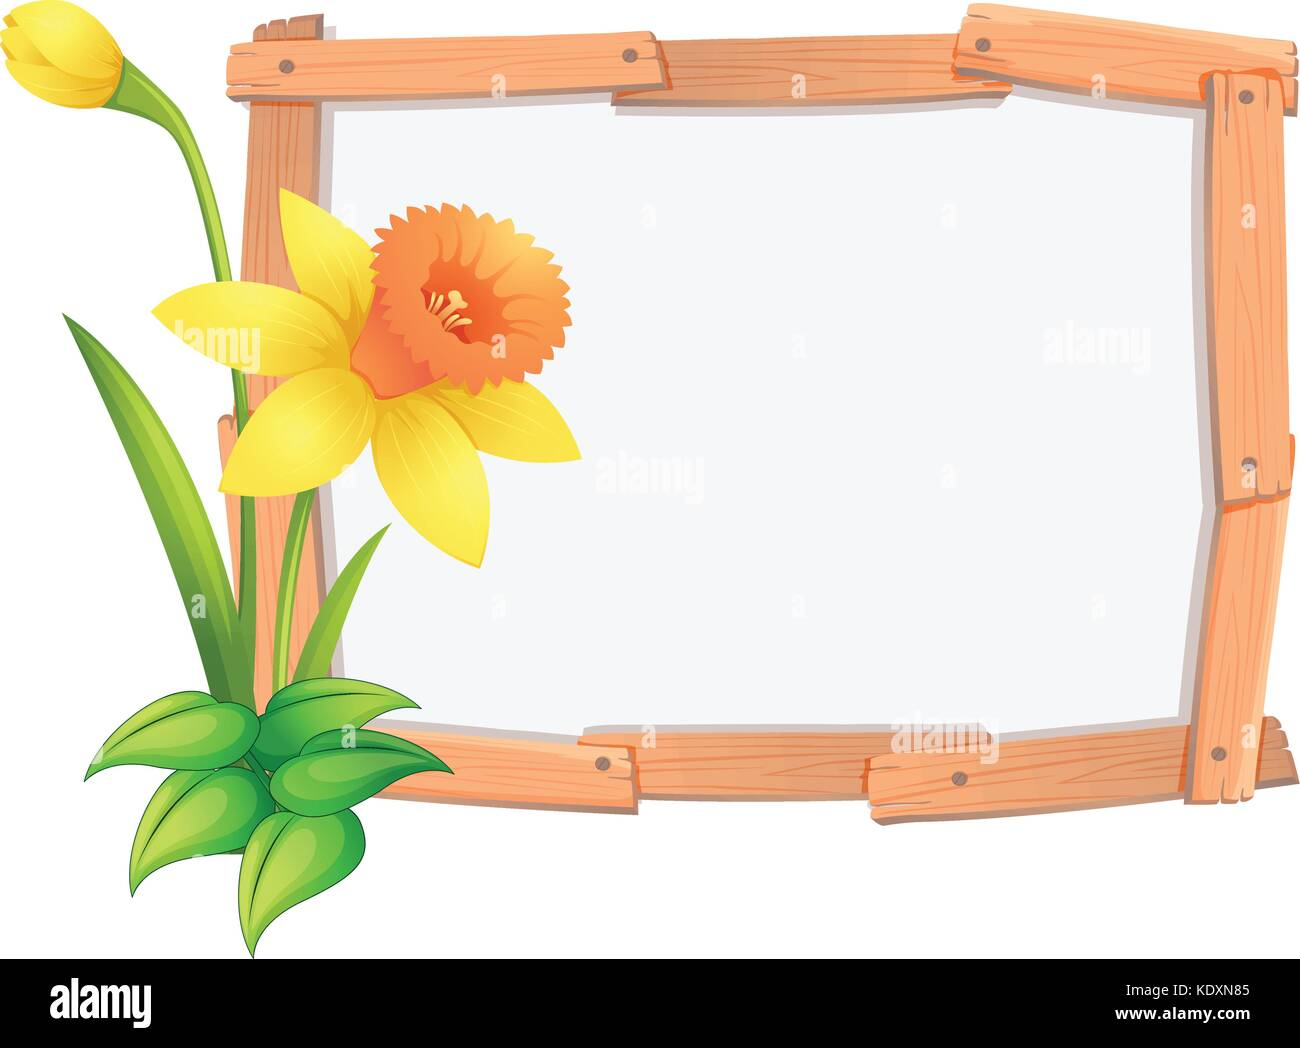 yellow daffodil flowers stock vector images alamy